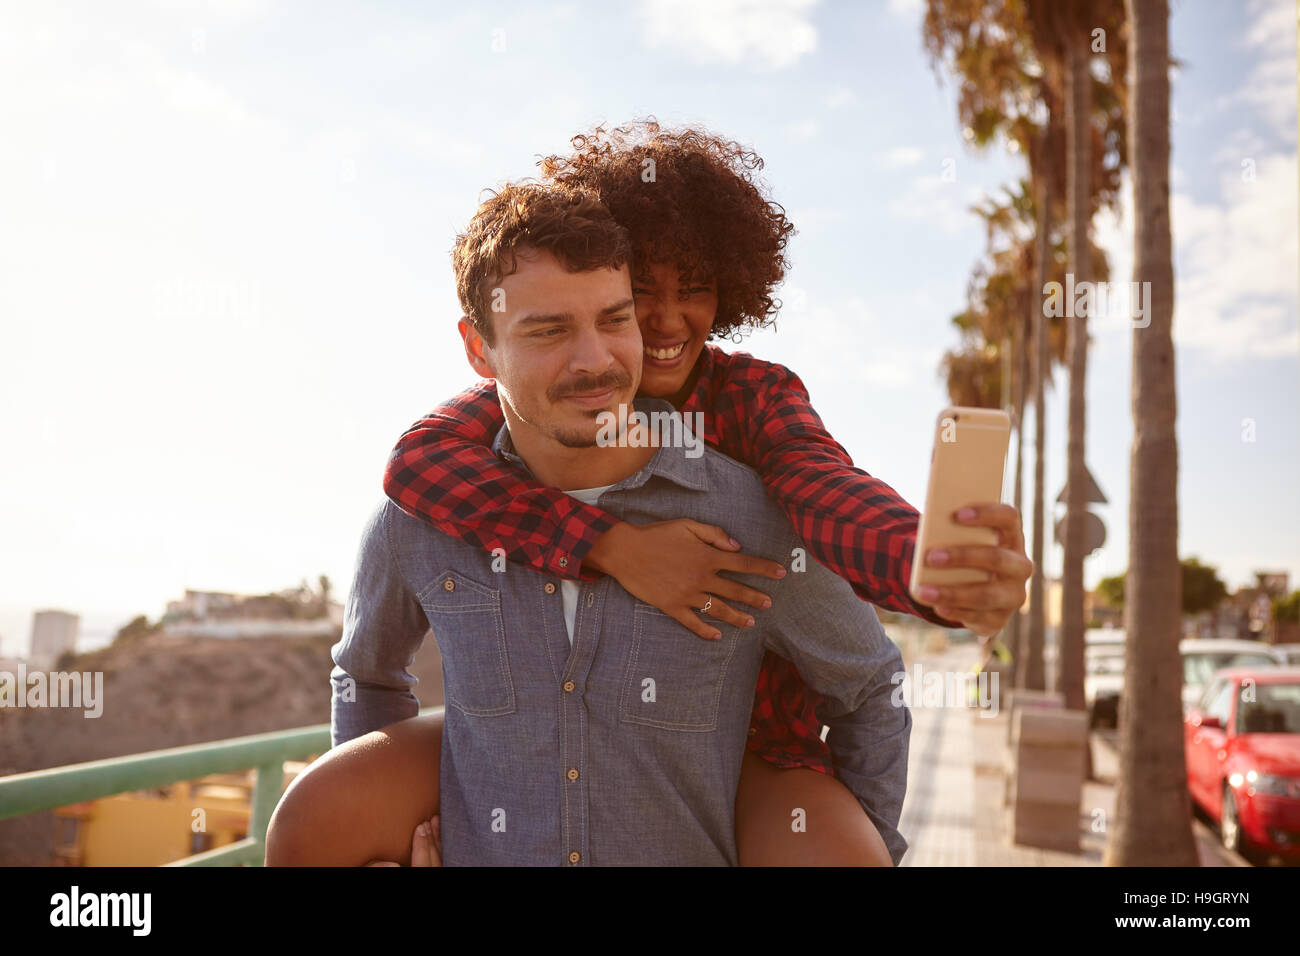 Piggy back riding girl taking a selfie of them while sitting on her boyfriends back holding on with her right hand - Stock Image